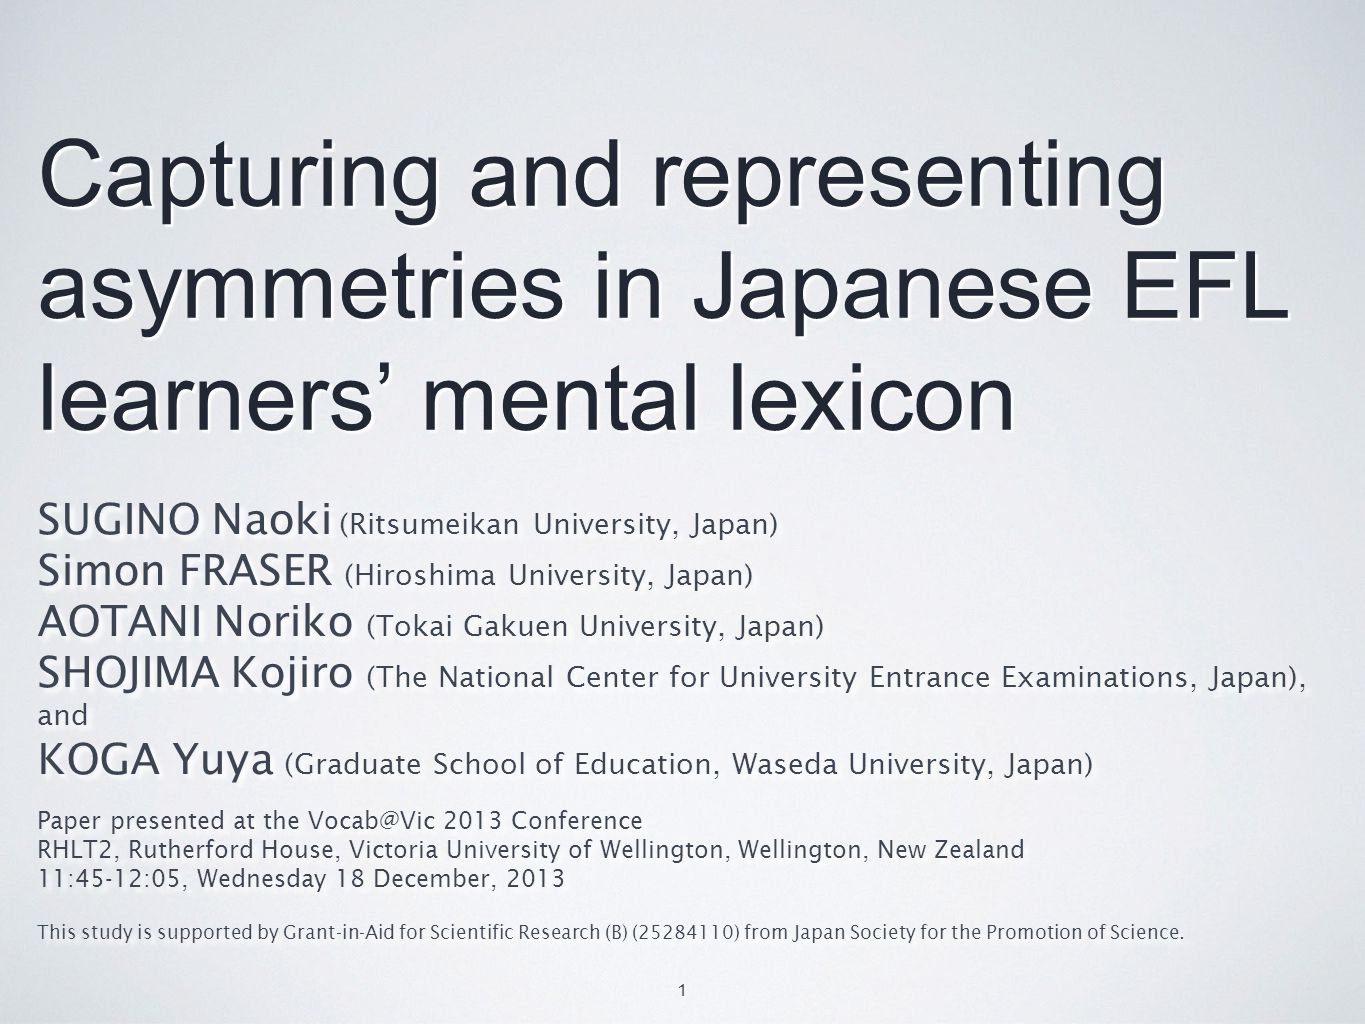 Capturing and representing asymmetries in Japanese EFL learners' mental lexicon SUGINO Naoki (Ritsumeikan University, Japan) Simon FRASER (Hiroshima University, Japan) AOTANI Noriko (Tokai Gakuen University, Japan) SHOJIMA Kojiro (The National Center for University Entrance Examinations, Japan), and KOGA Yuya (Graduate School of Education, Waseda University, Japan) Paper presented at the Vocab@Vic 2013 Conference RHLT2, Rutherford House, Victoria University of Wellington, Wellington, New Zealand 11:45-12:05, Wednesday 18 December, 2013 This study is supported by Grant-in-Aid for Scientific Research (B) (25284110) from Japan Society for the Promotion of Science.